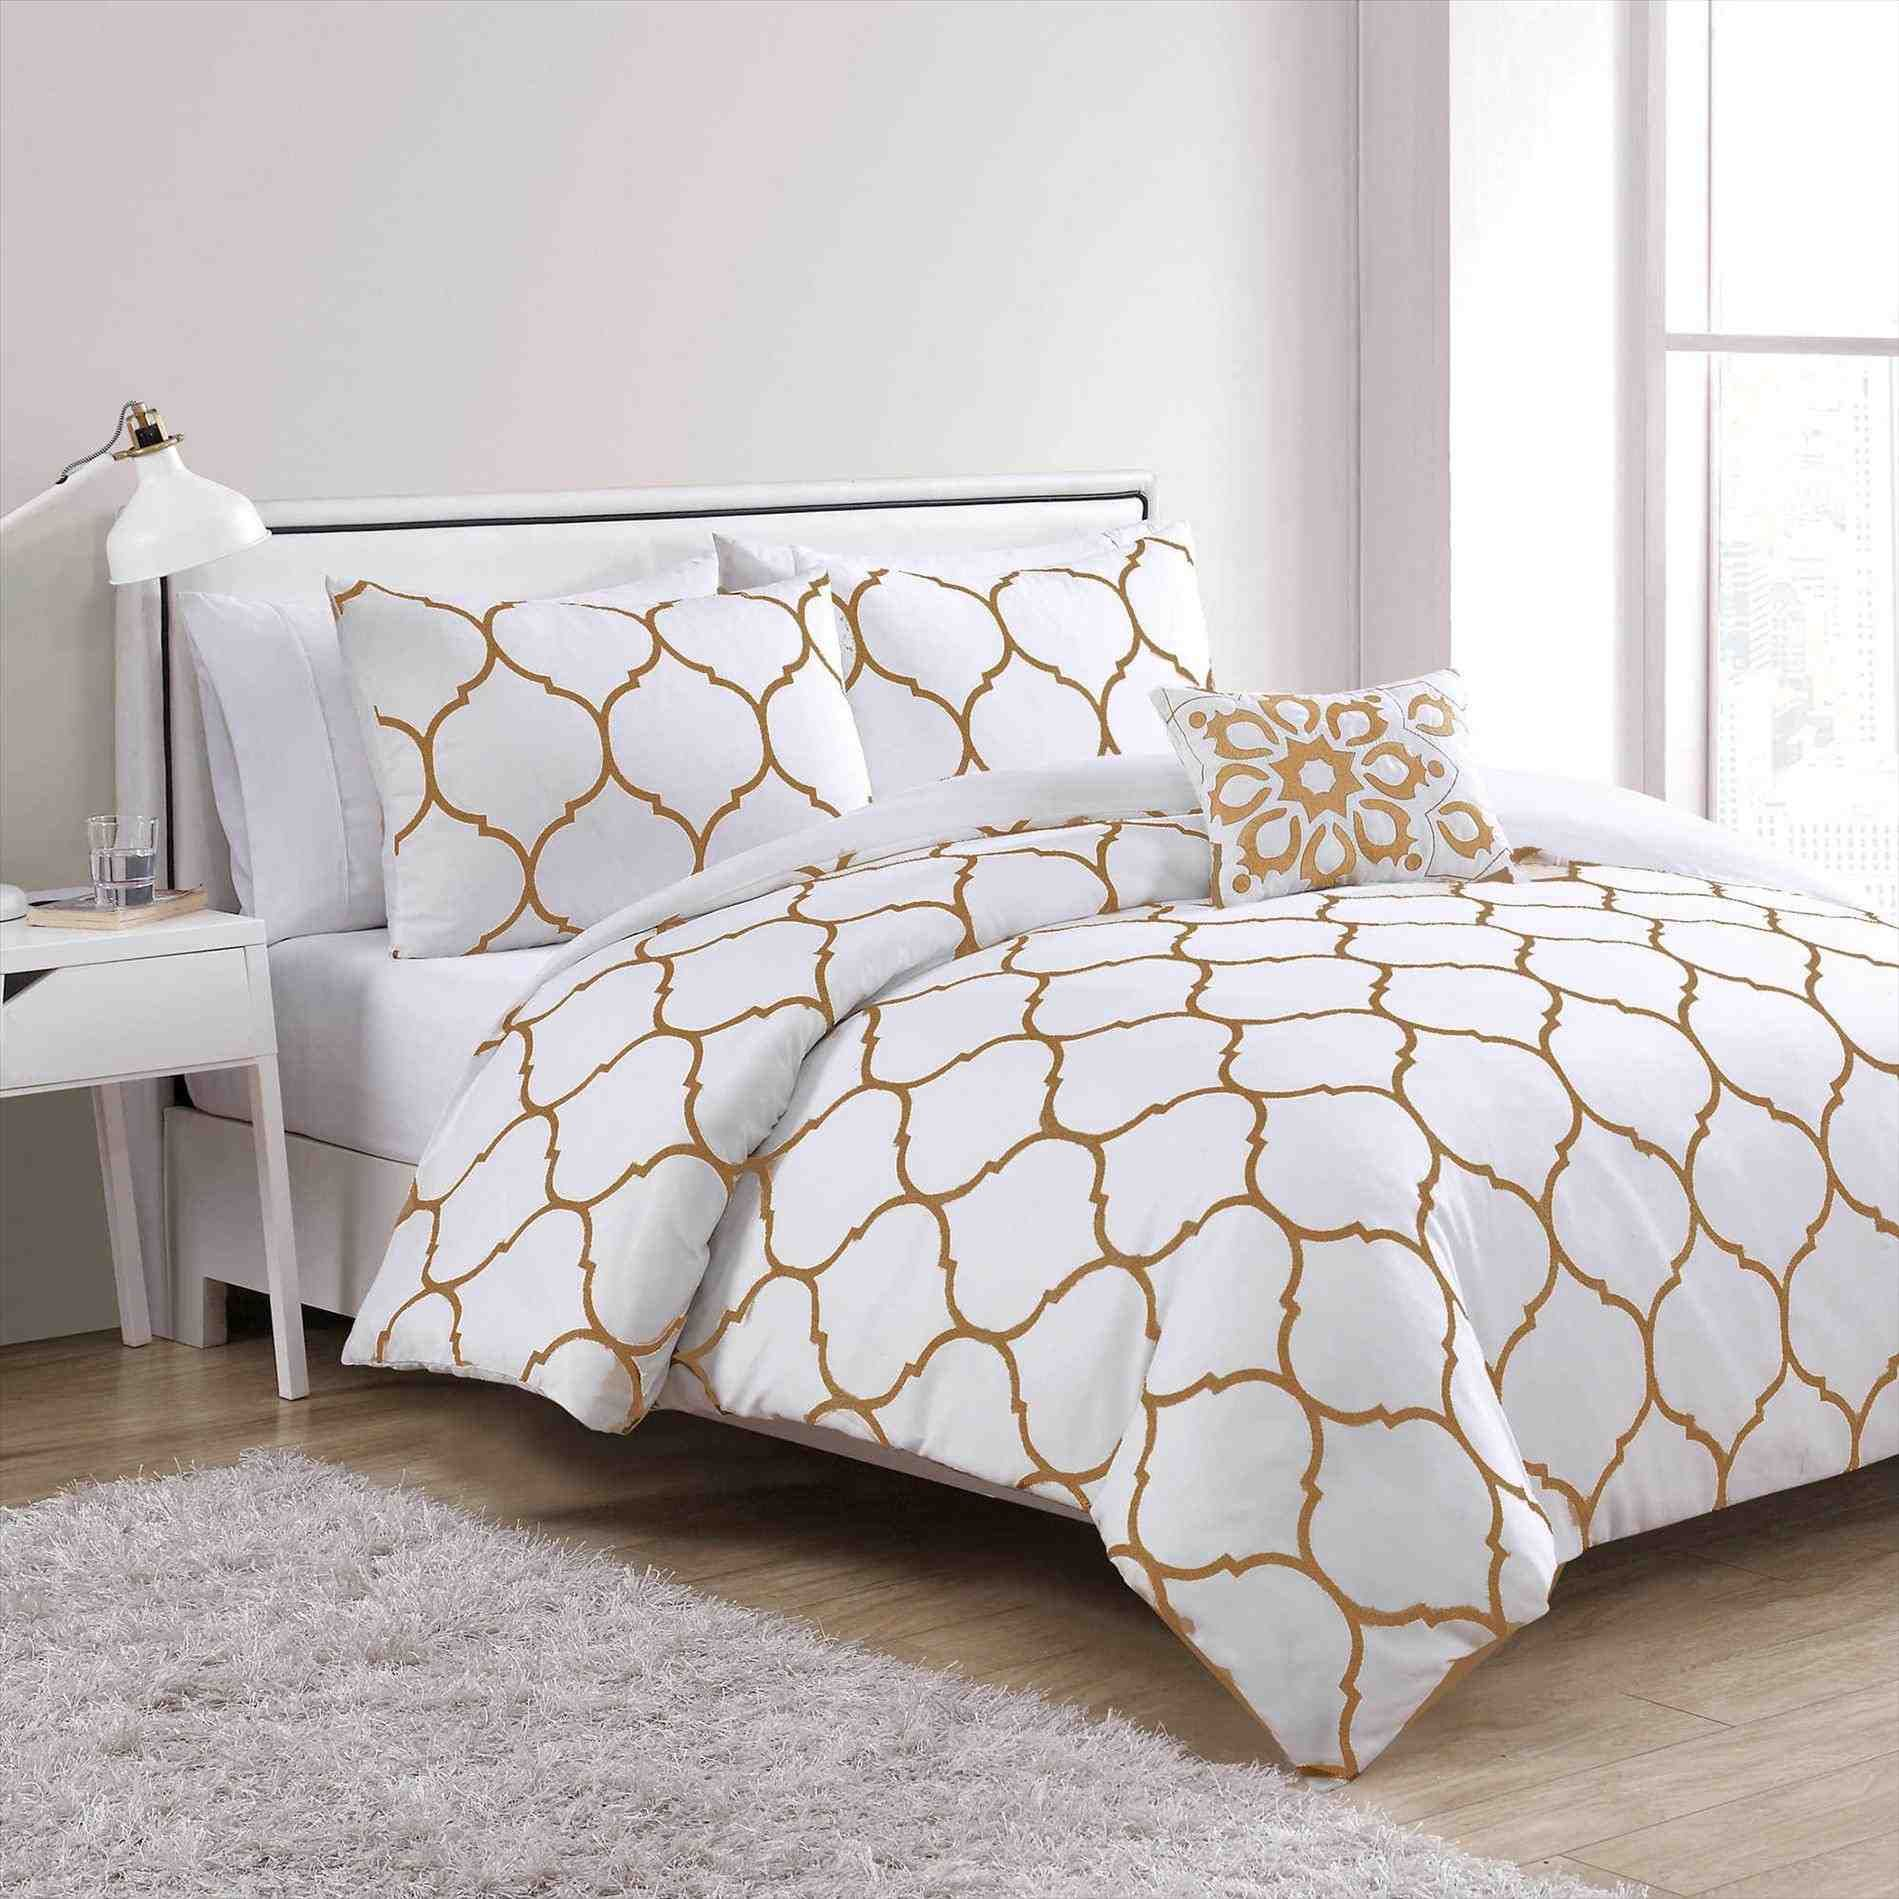 amador   results navy blue and gold bedroom set of amazonbasics piece bedinabag fullqueen dusty trellis microfiber nautical themed comforter